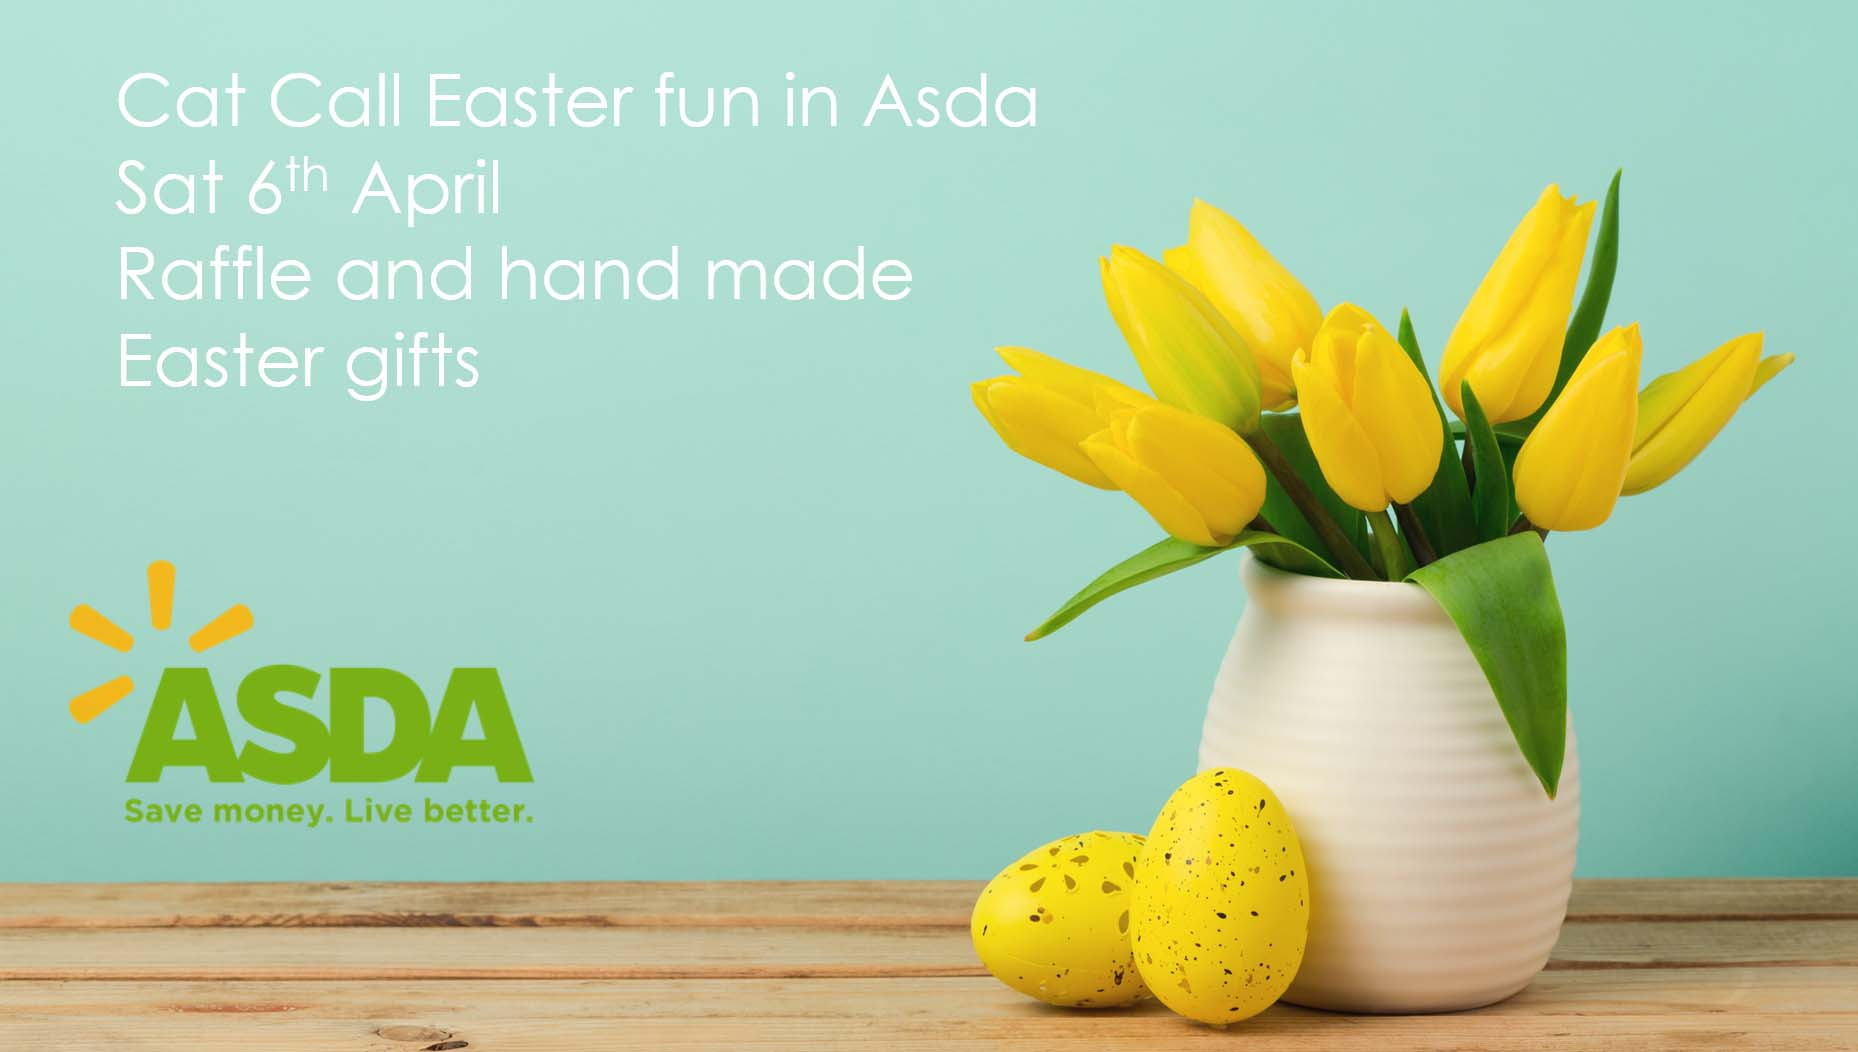 Cat Call Easter fun in Asda Sat 6th April